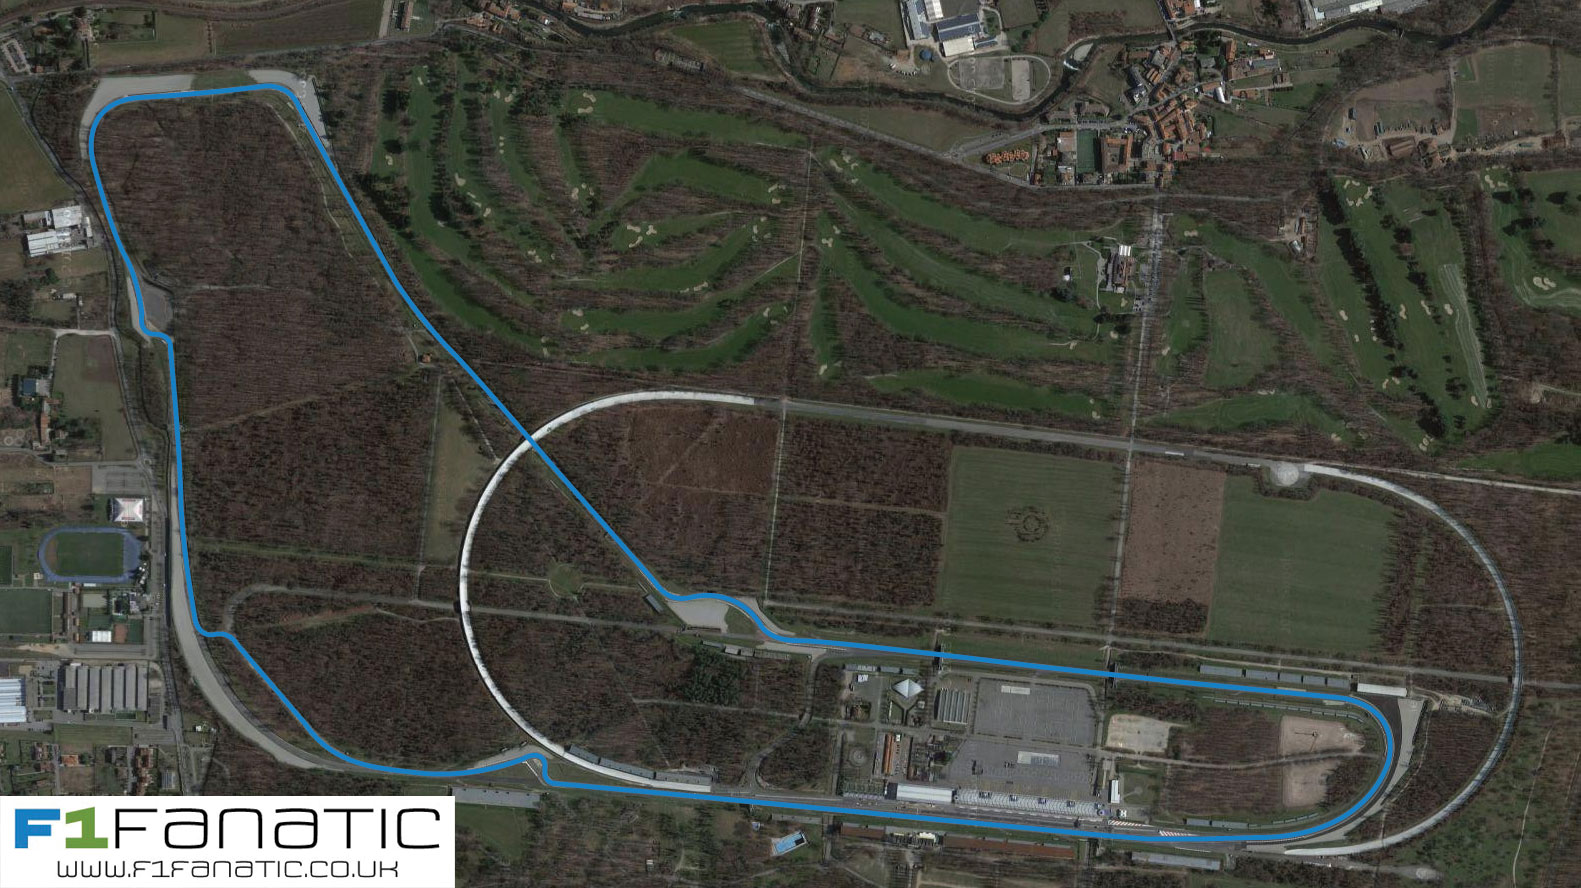 Potential new chicane at Monza for 2017